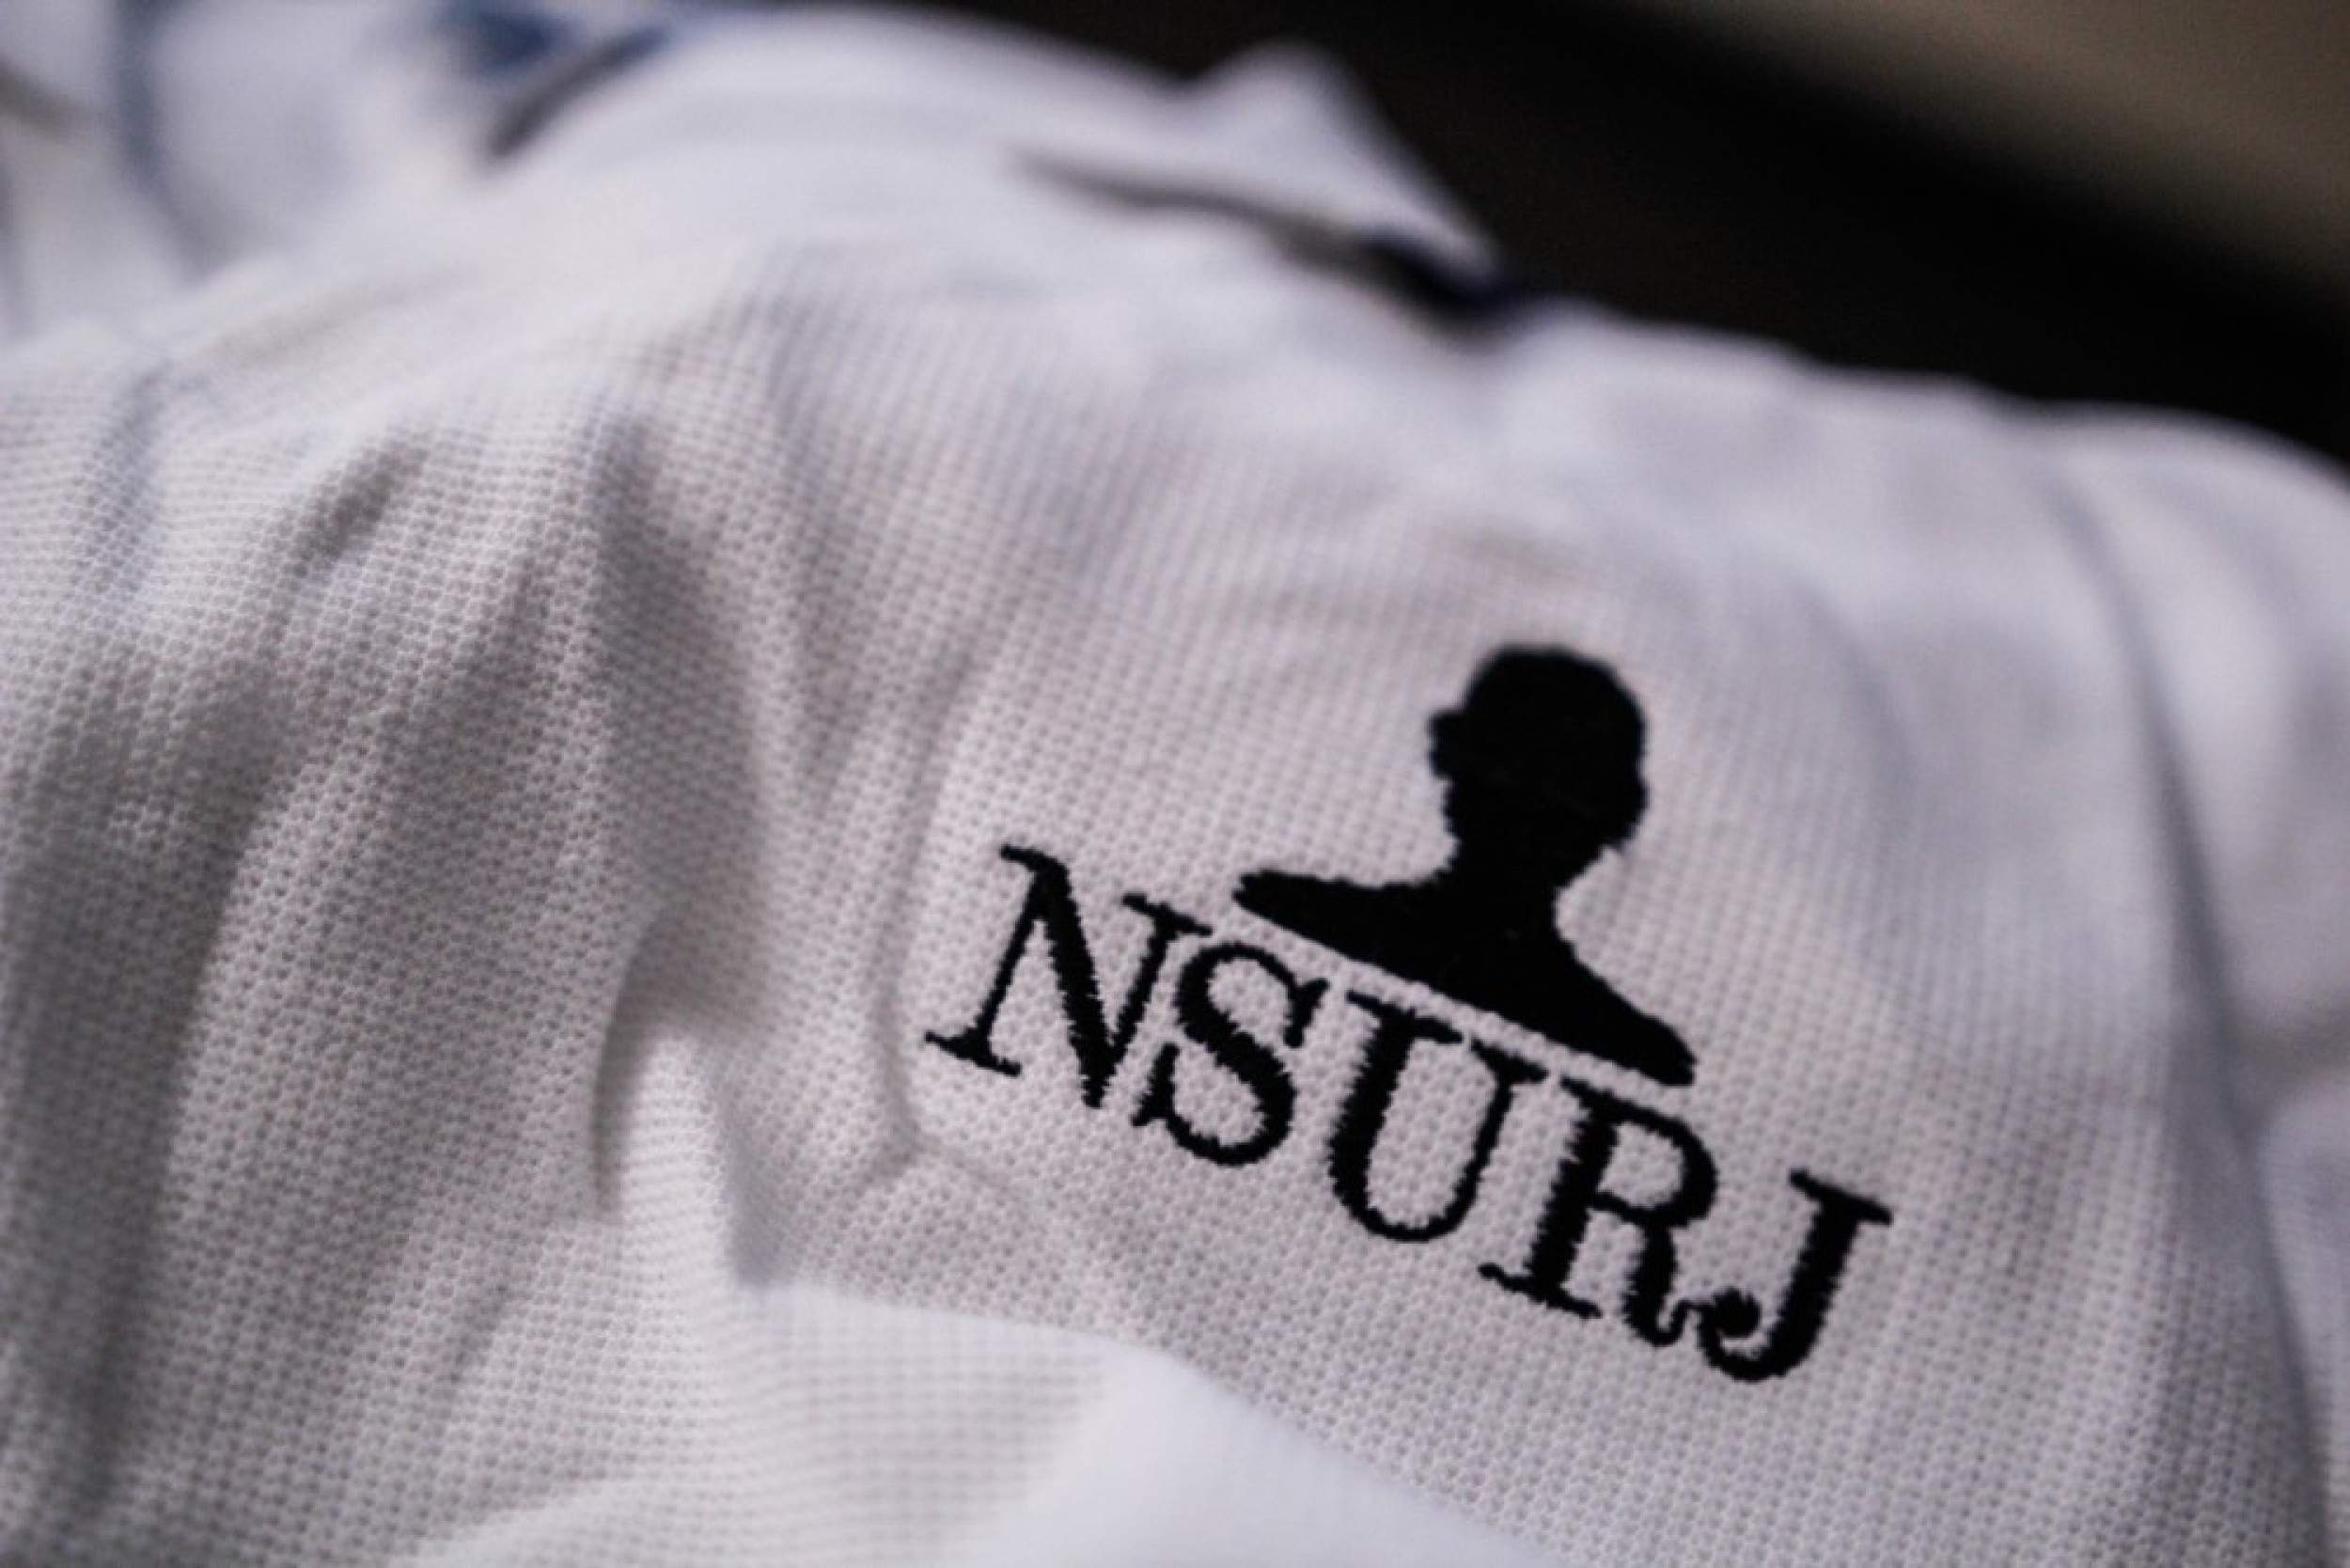 NSURJ Logo on a shirt